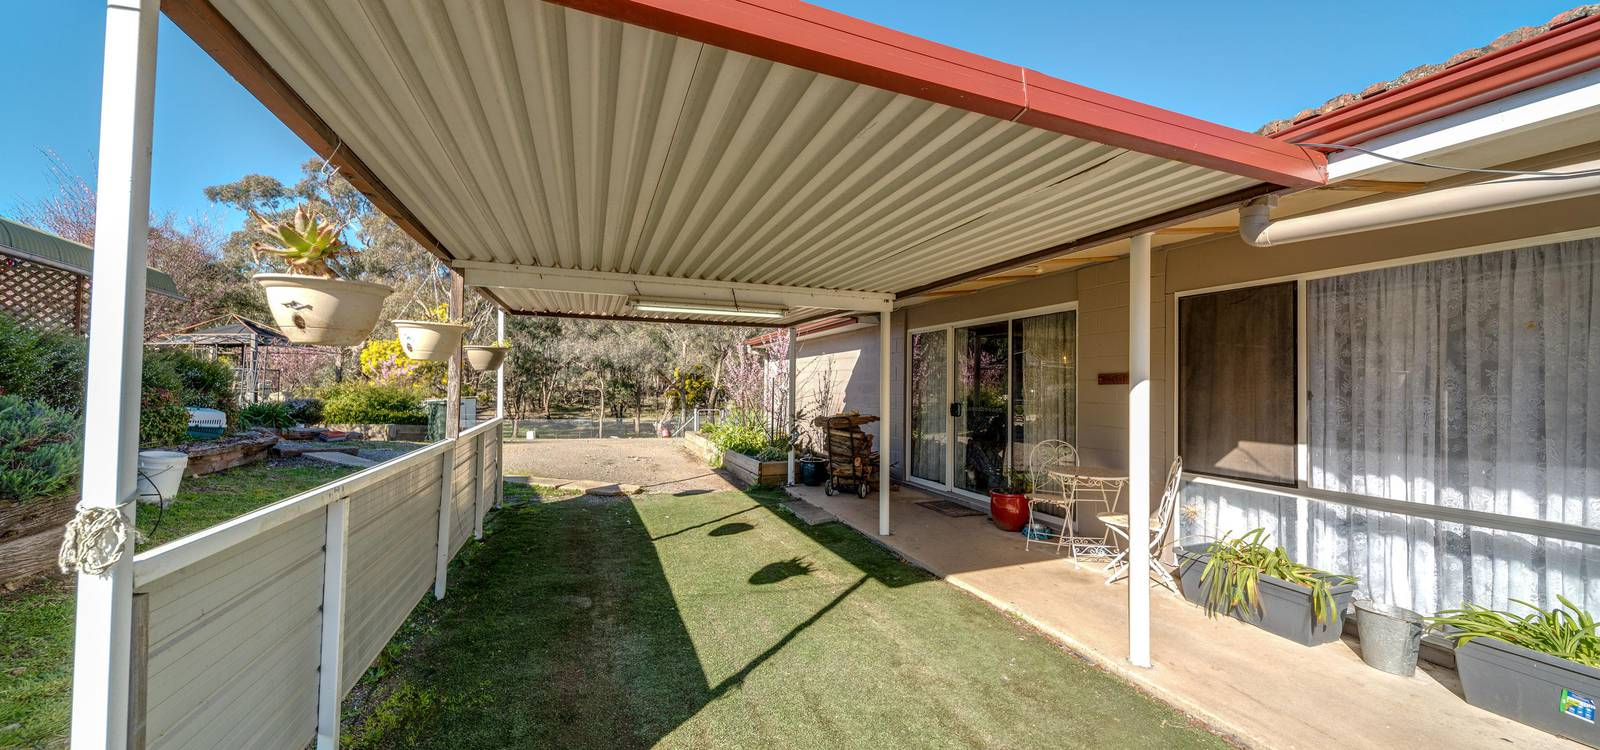 311 Forest Siding Road MIDDLE ARM, NSW 2580 - photo 1